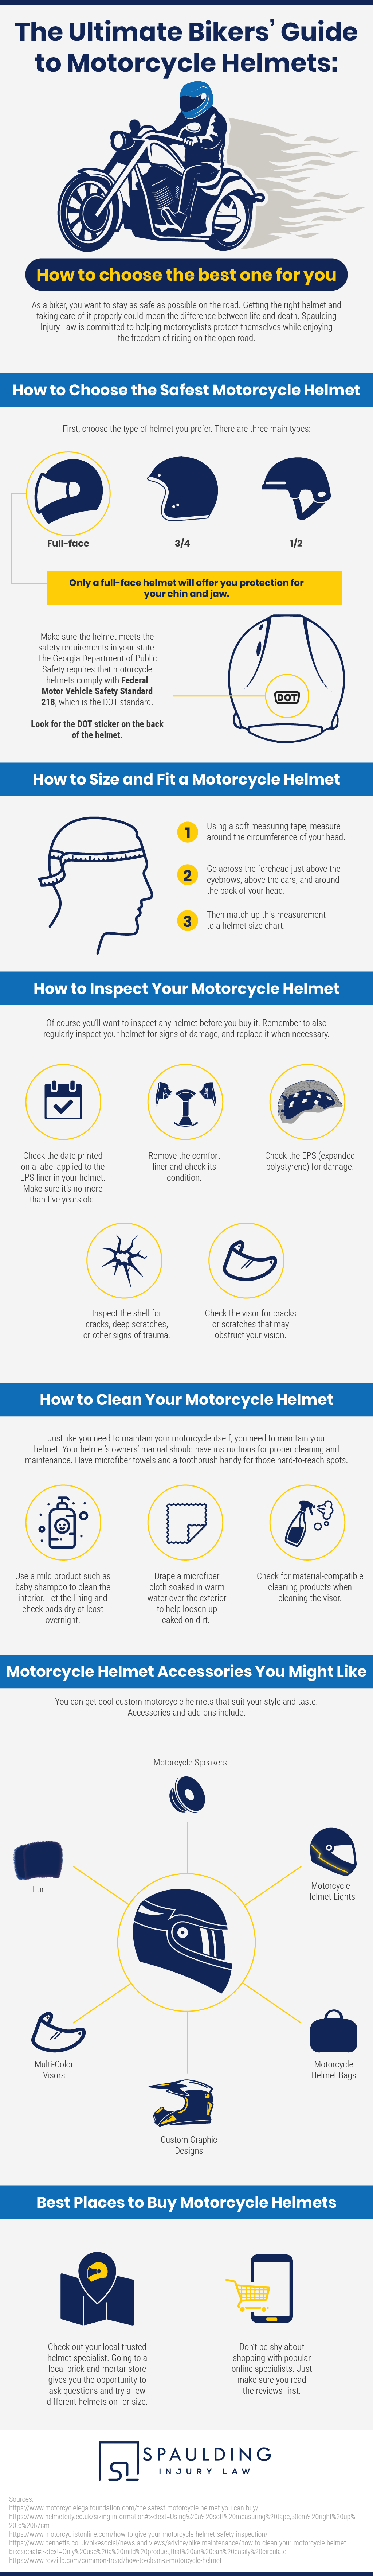 The Ultimate Riders' Handbook to Motorcycle Helmets